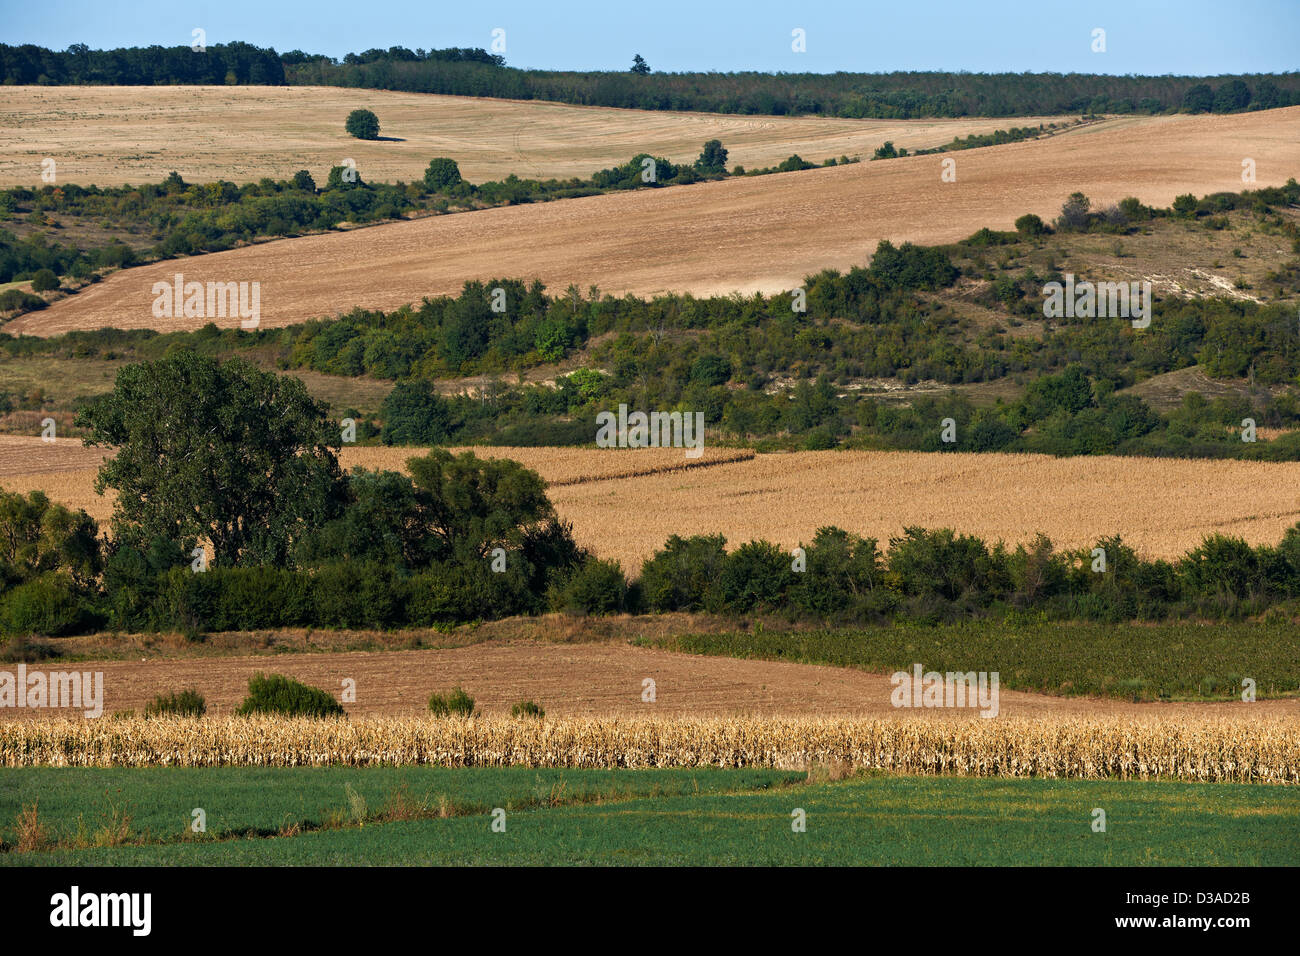 Landscape from Danube valley, Nort Bulgaria in late summer season. - Stock Image